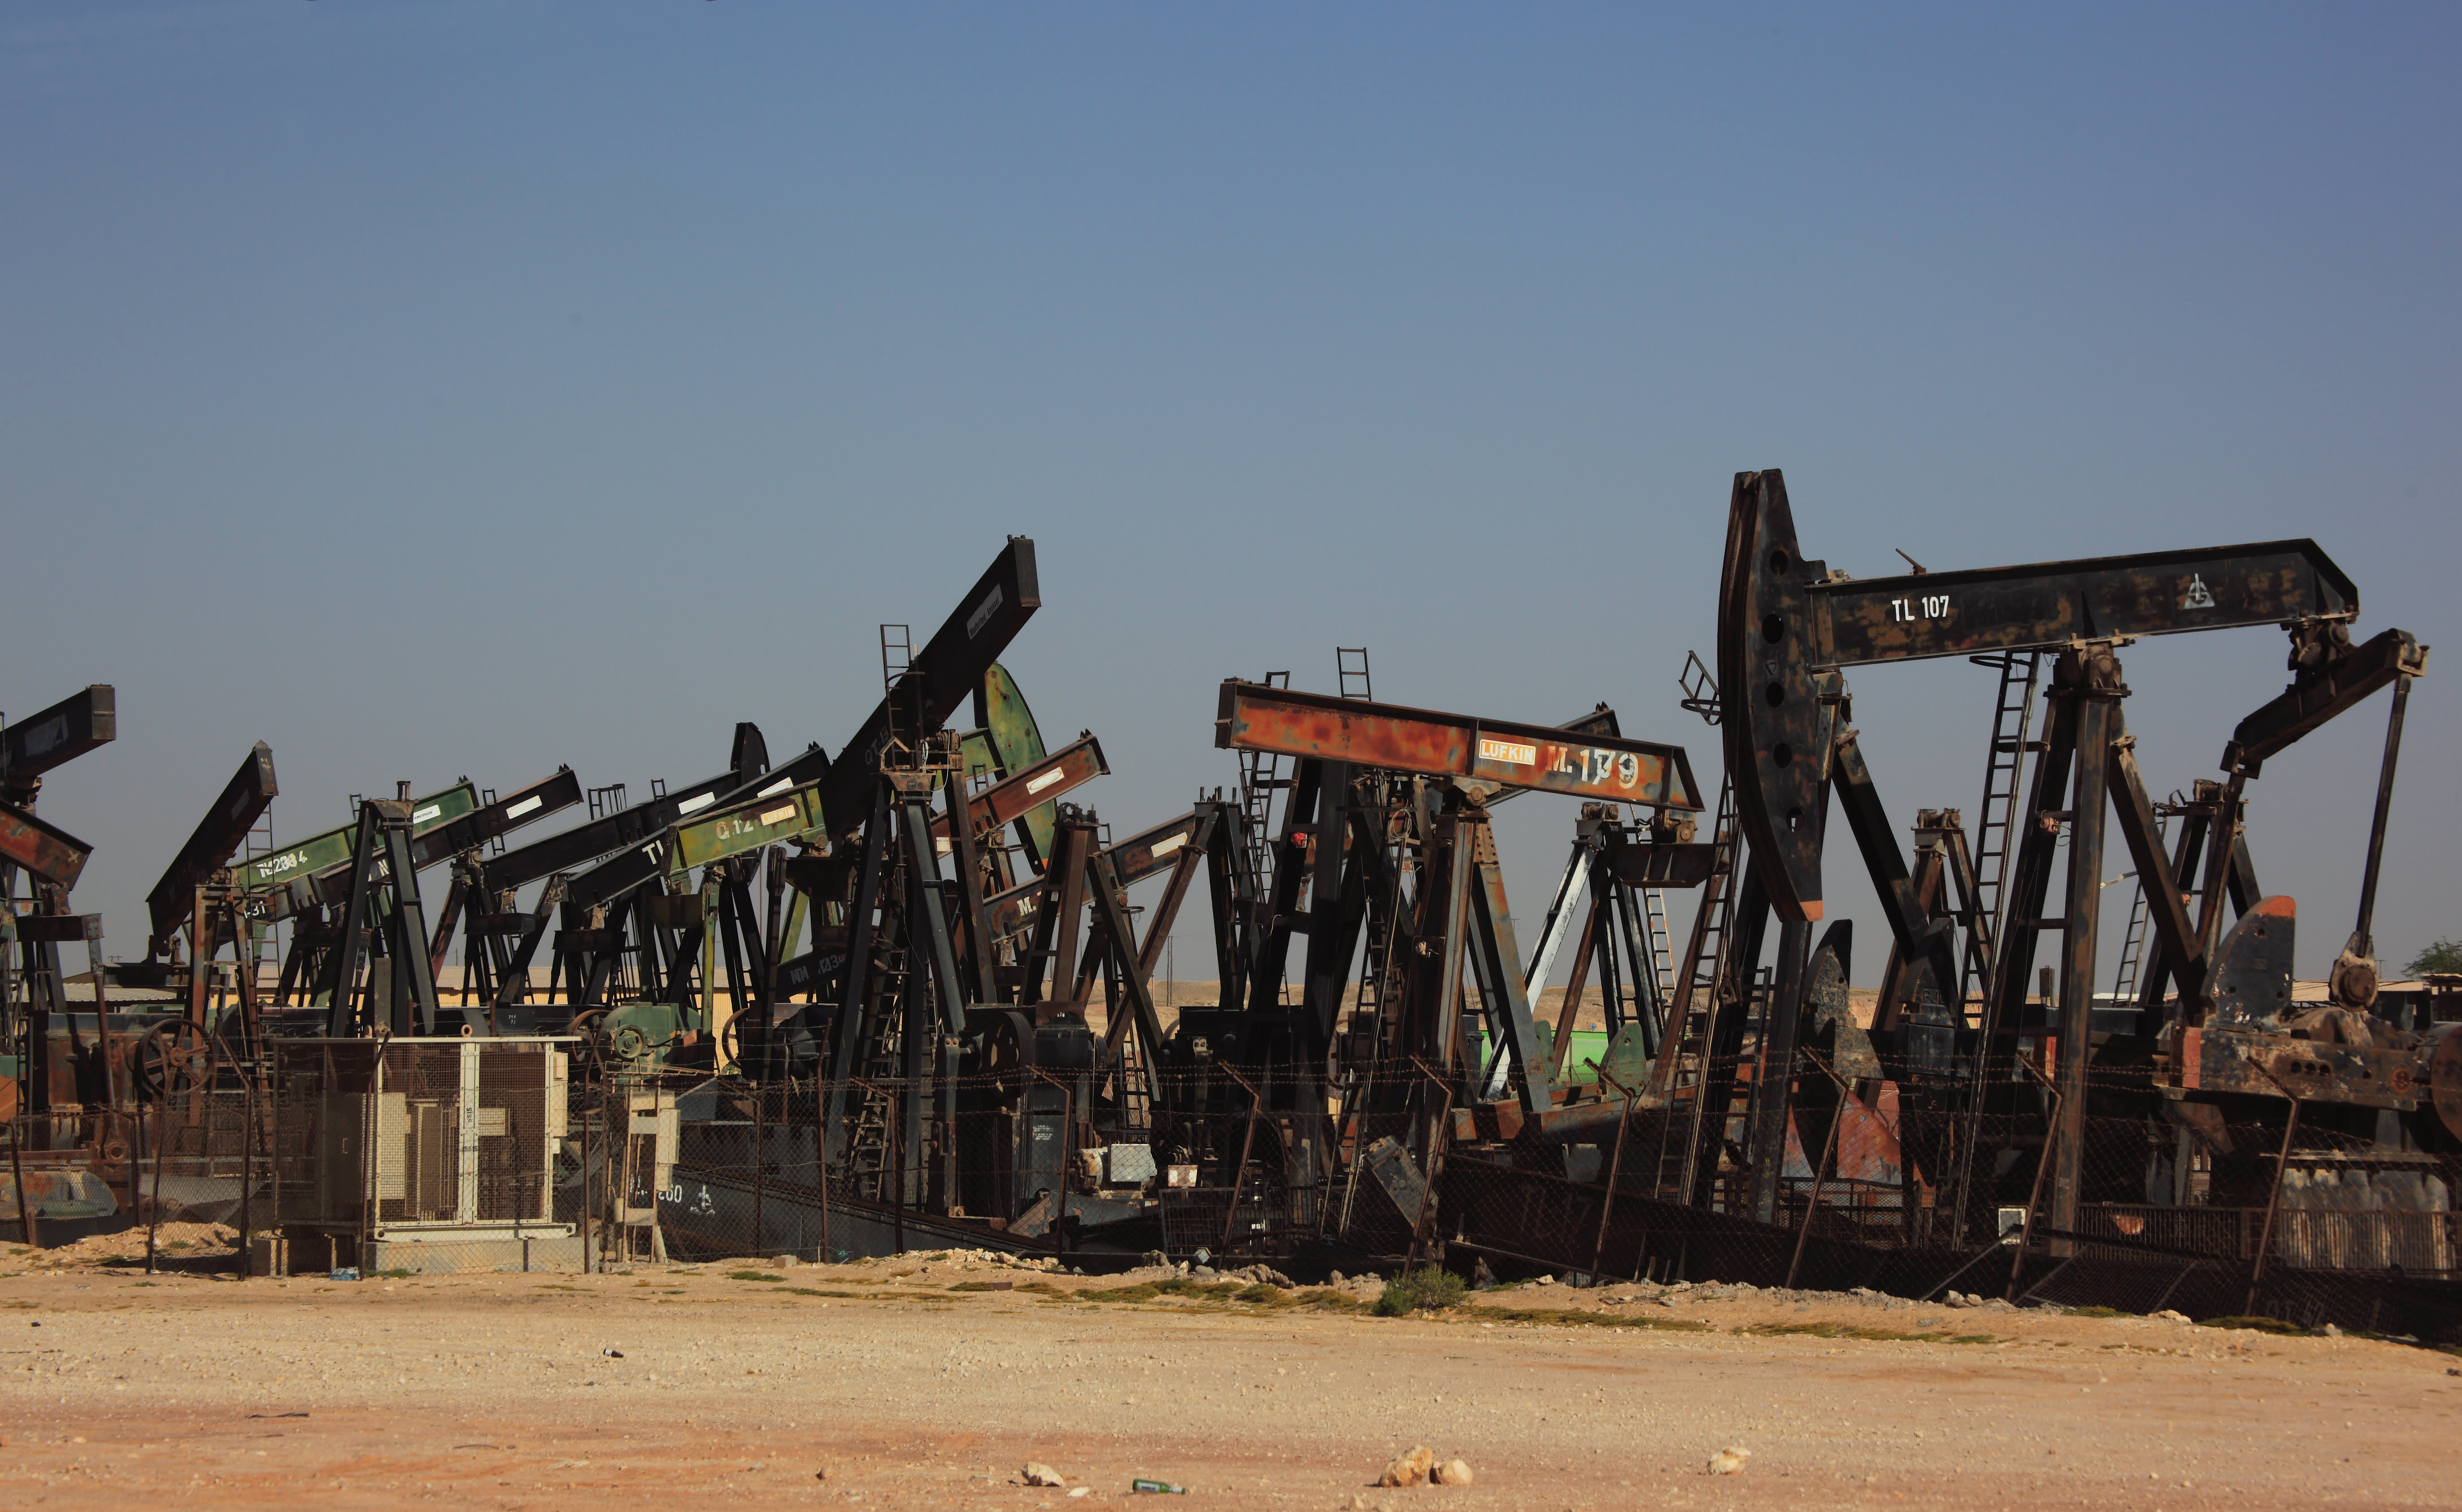 Camp with retired oil pumps with Marmul, Oman